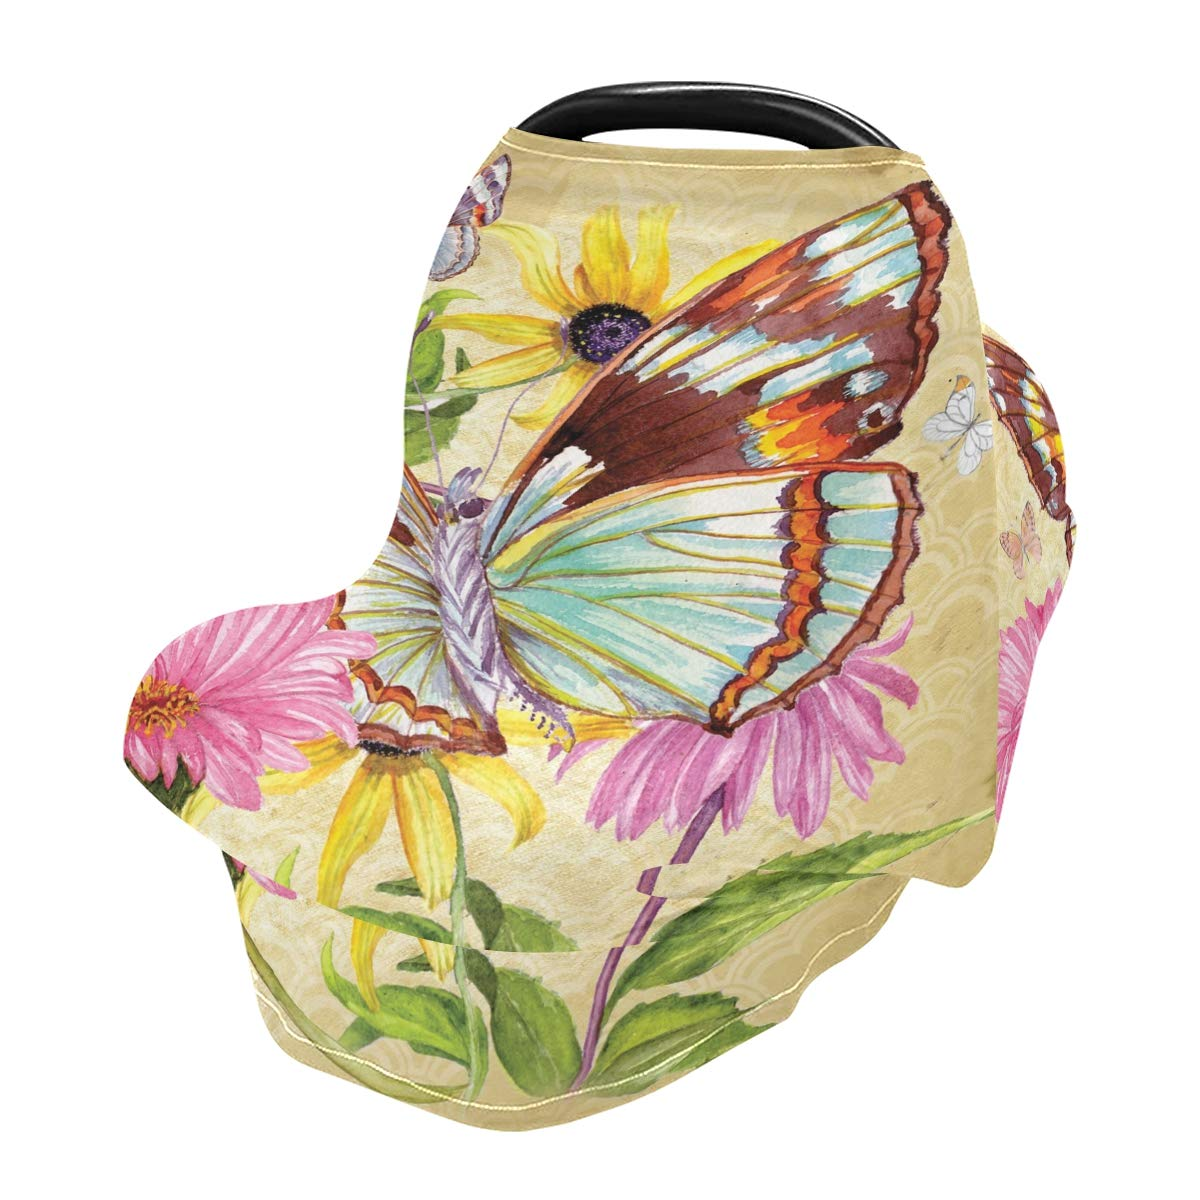 Nursing Cover Breastfeeding Scarf Butterfly - Baby Car Seat Covers, Infant Stroller Cover, Carseat Canopy for Girls and Boys(810b)